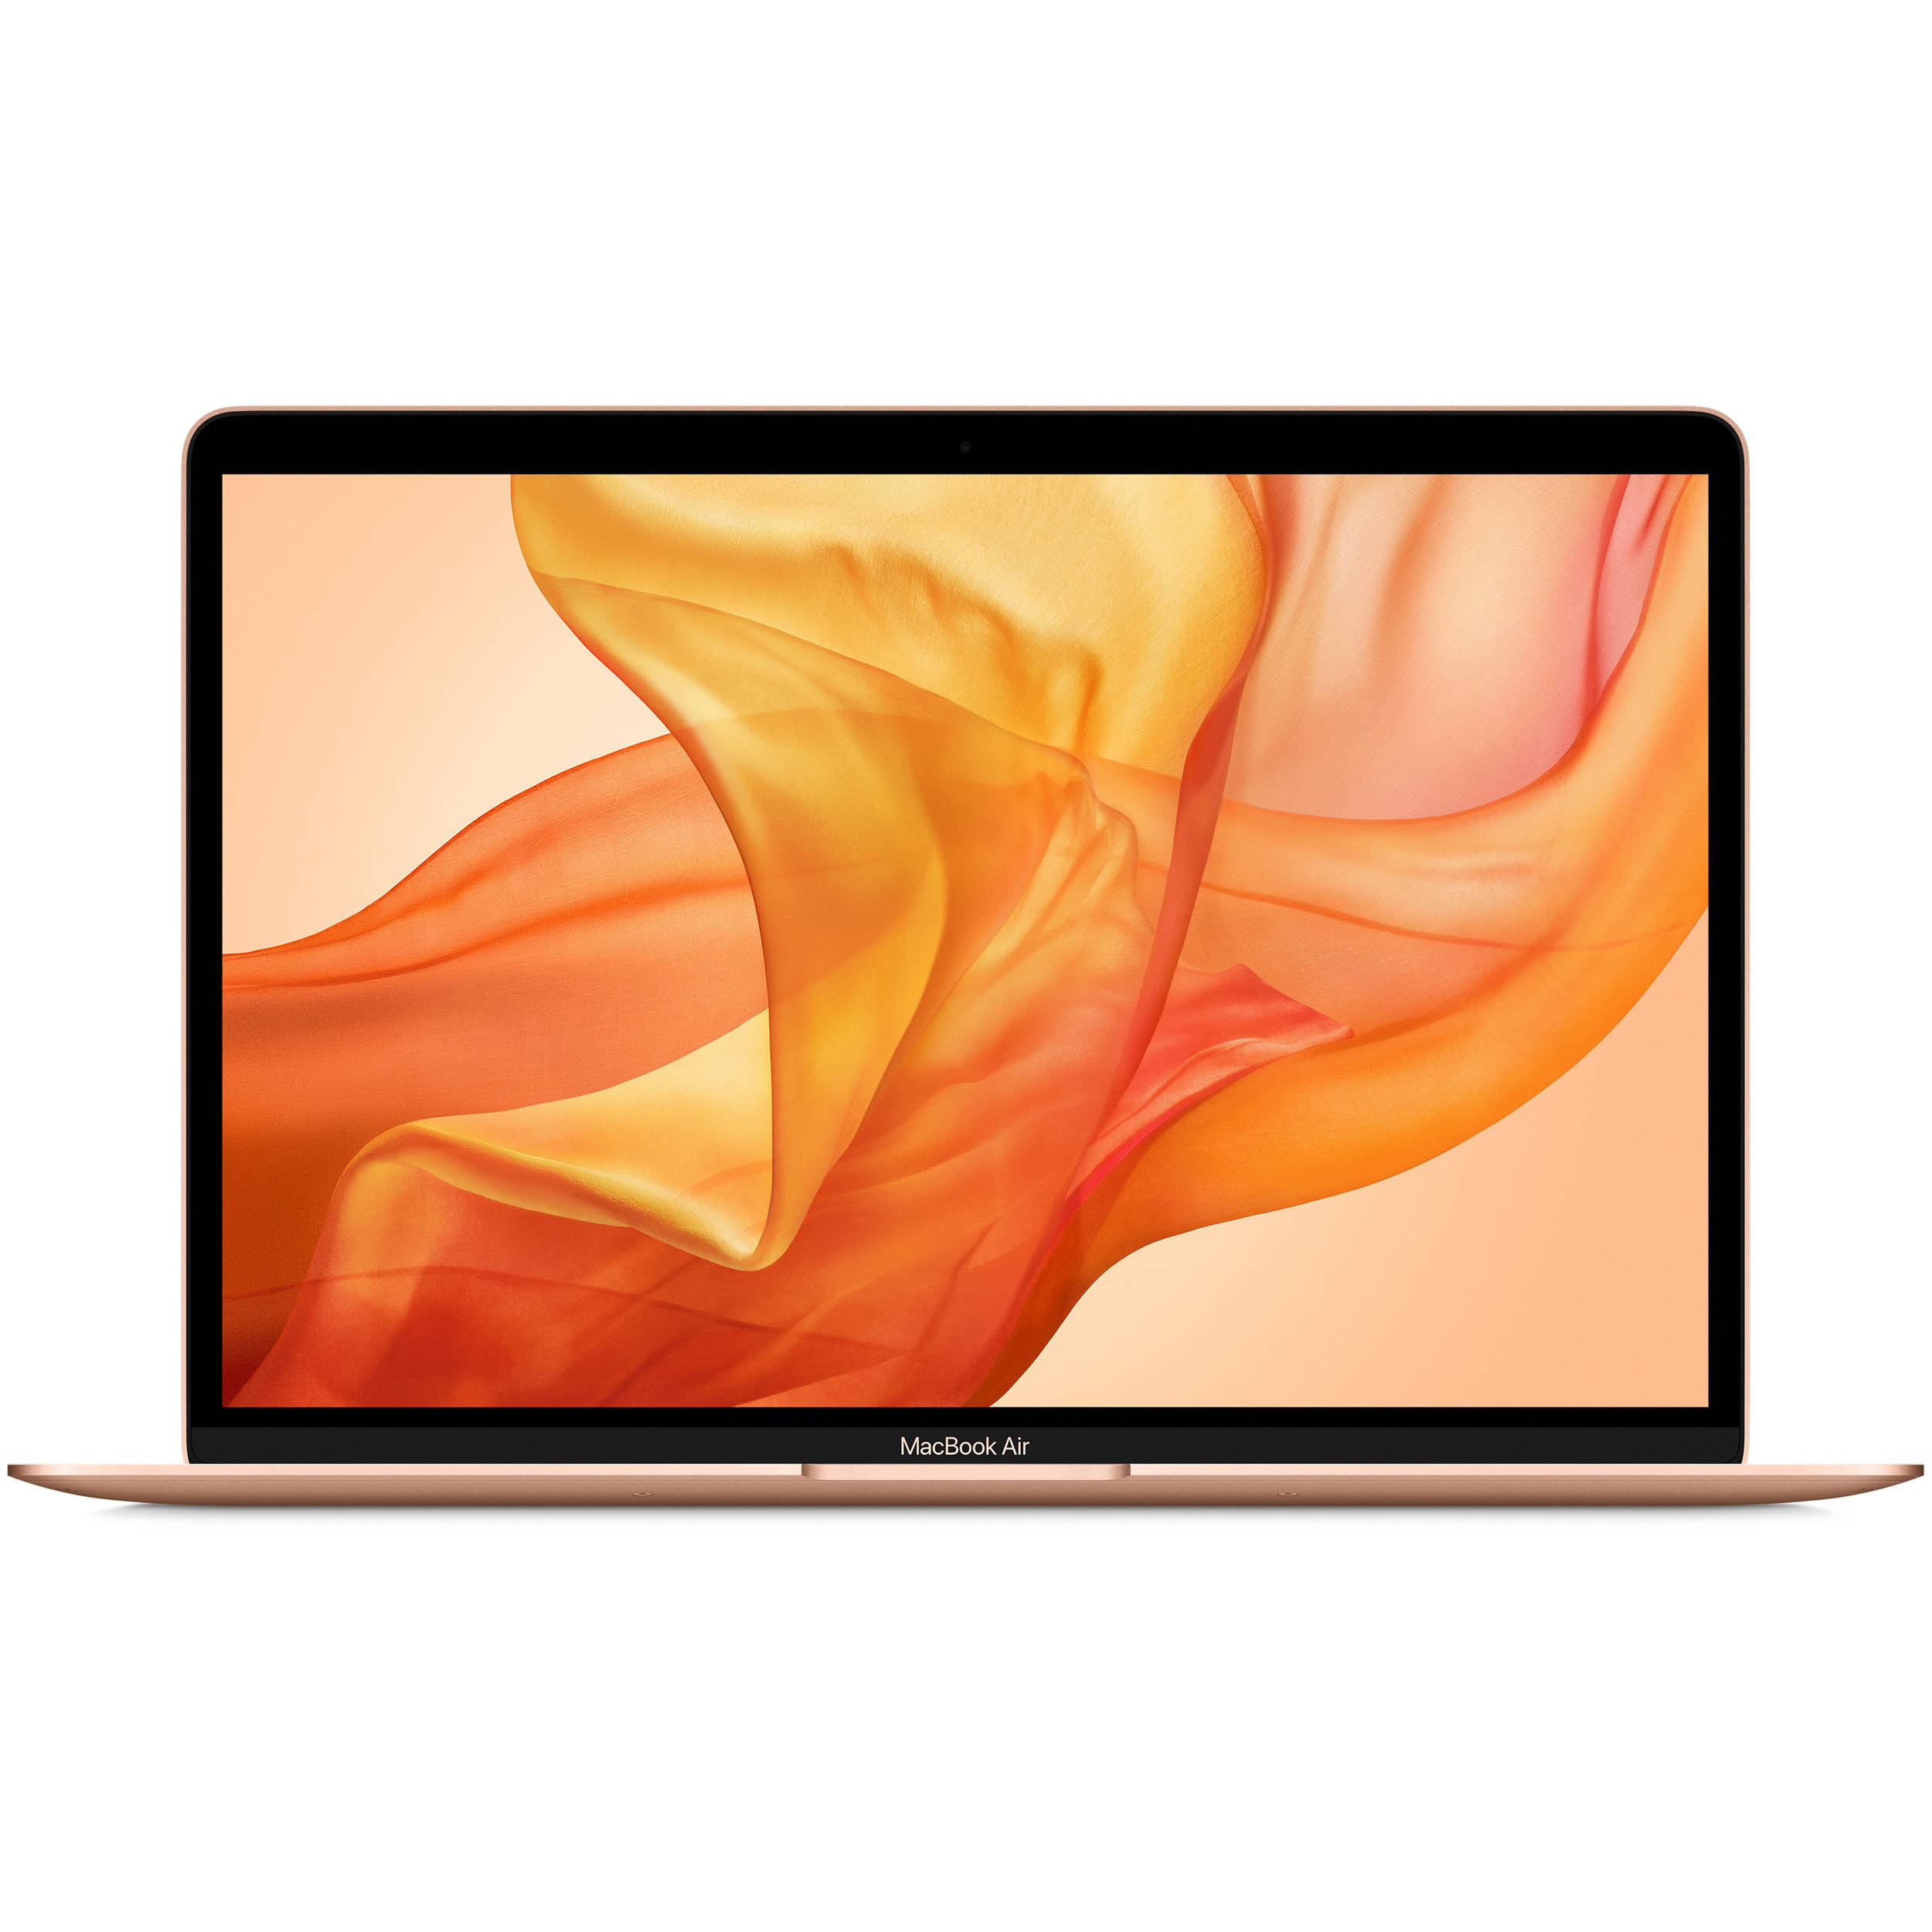 Image of Apple MacBook Air (2020) 13-inch Intel Core i3 8GB 256GB TL2 - Gold (US Keyboard)